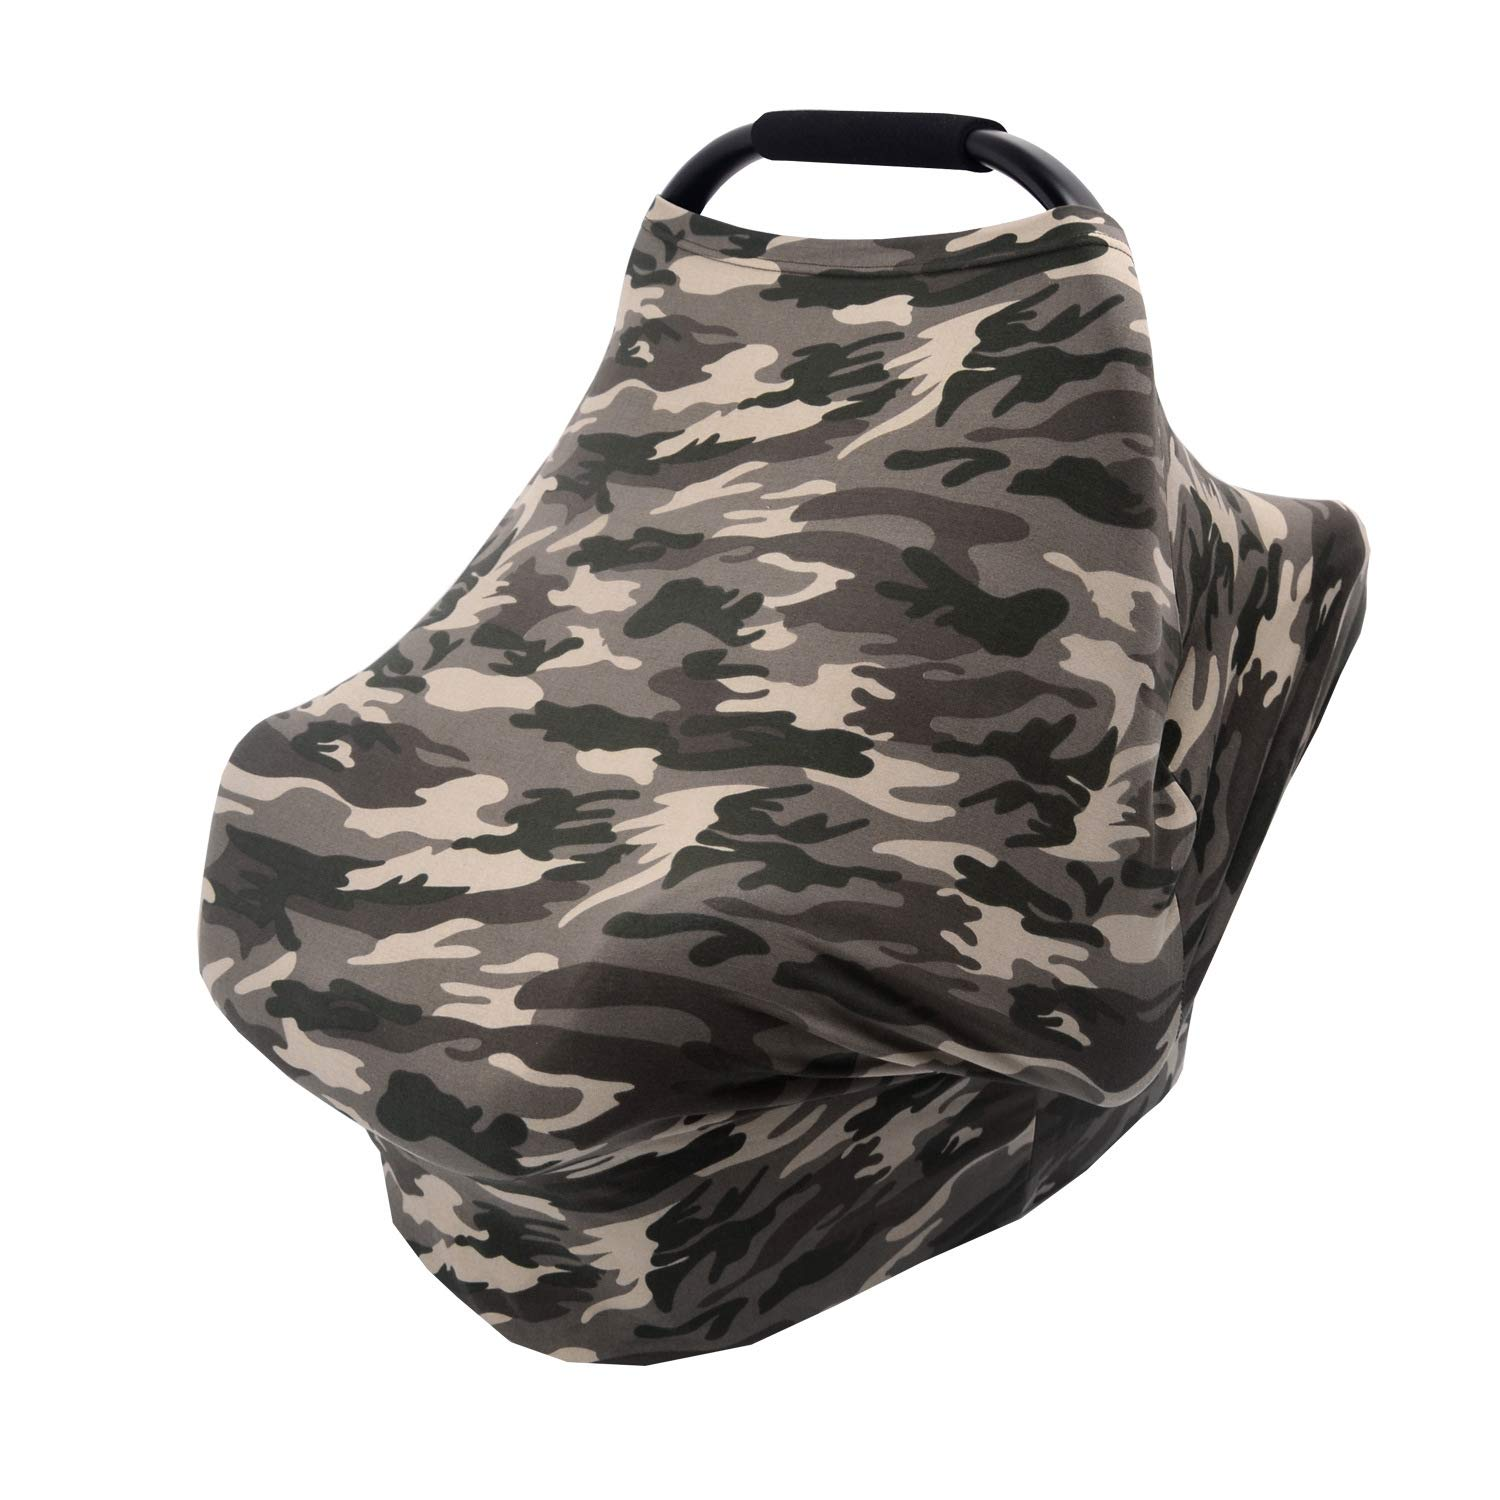 HONEY$HOMEY Camouflage Series Baby Car Seat Cover Brown Earth